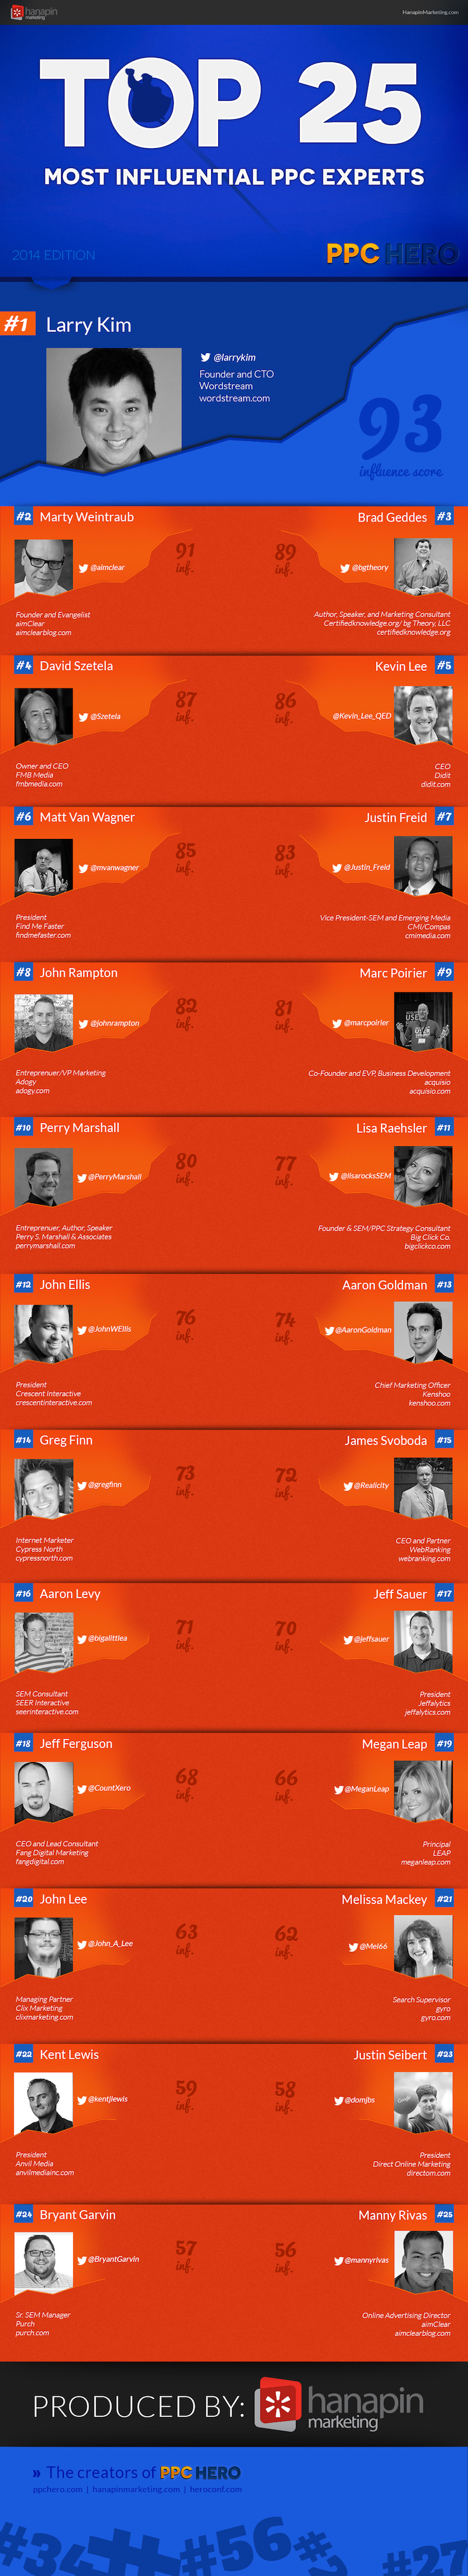 PPC-Heros-Top-25-Most-Influential-PPC-Experts-2014-Infographic